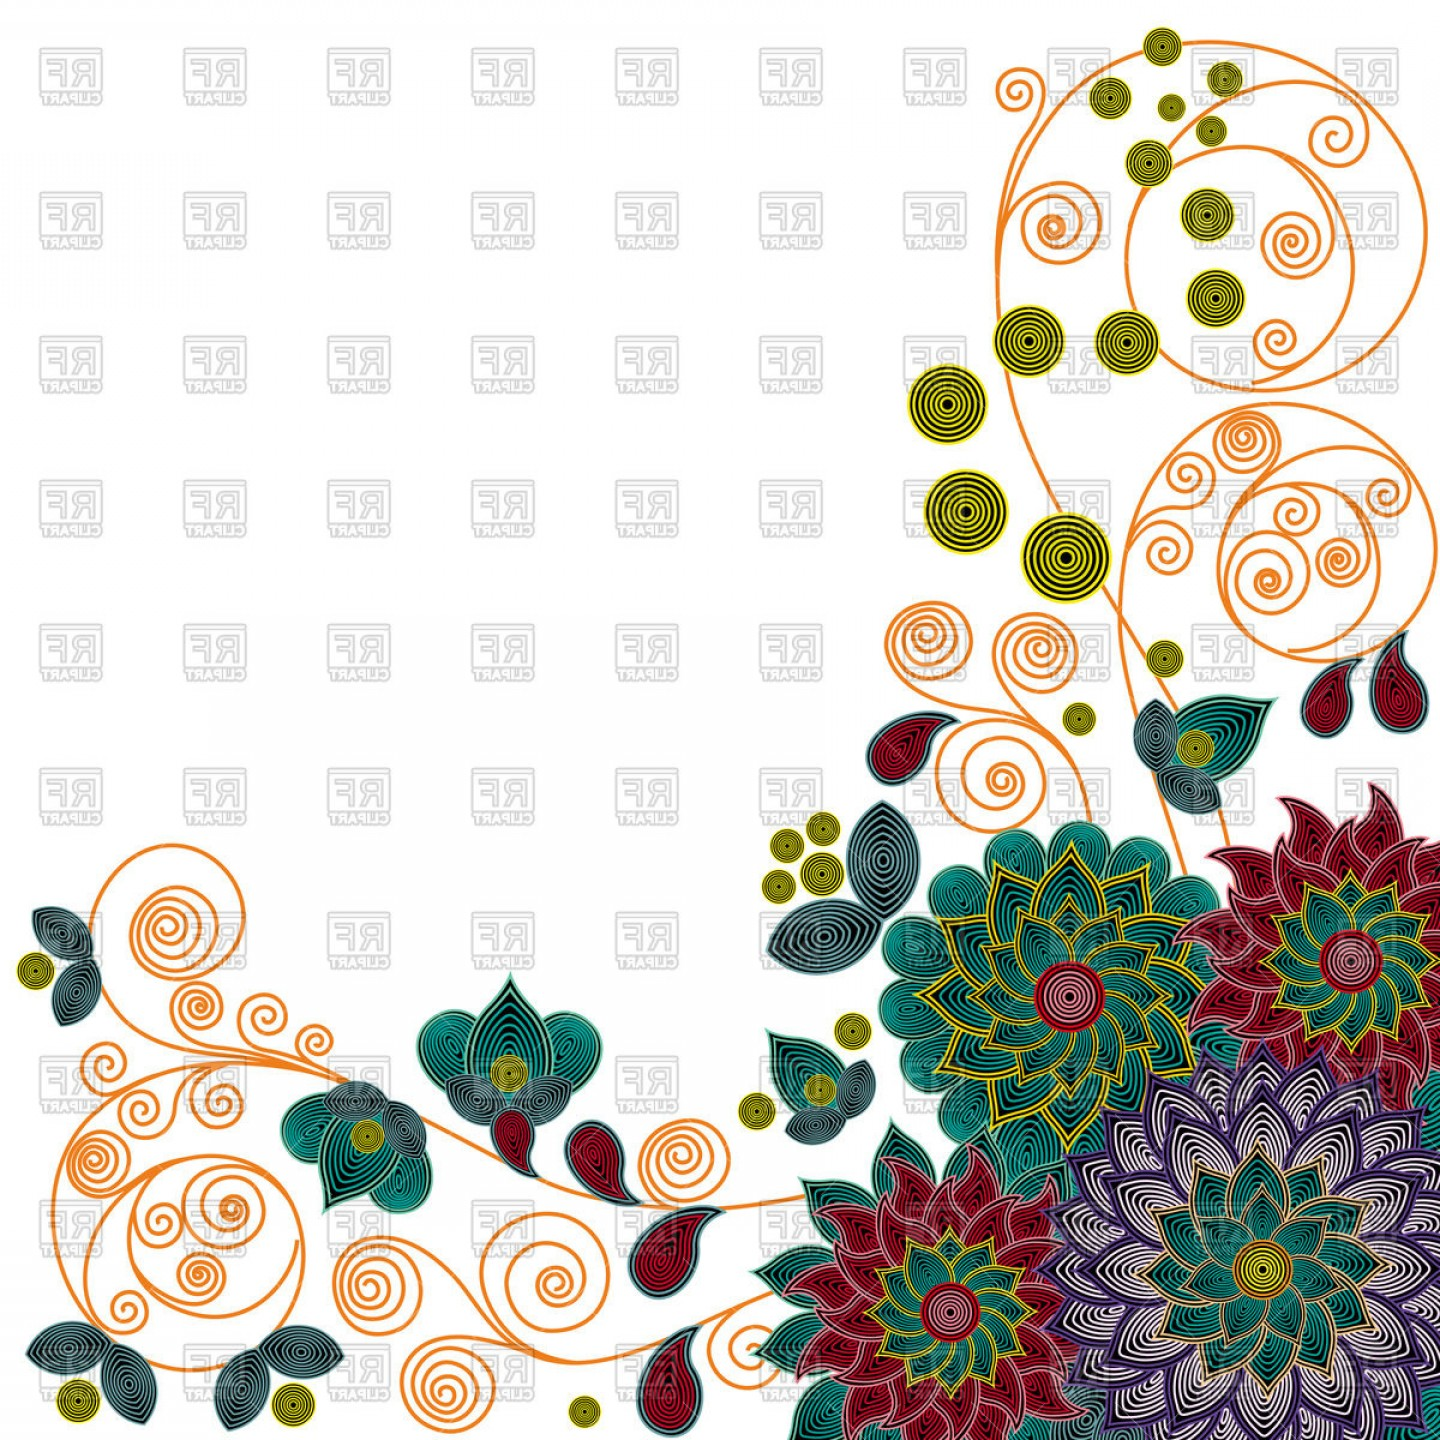 Beautiful Flowers Vector Graphic: Floral Pattern With Beautiful Colorful Stylized Flowers Vector Clipart